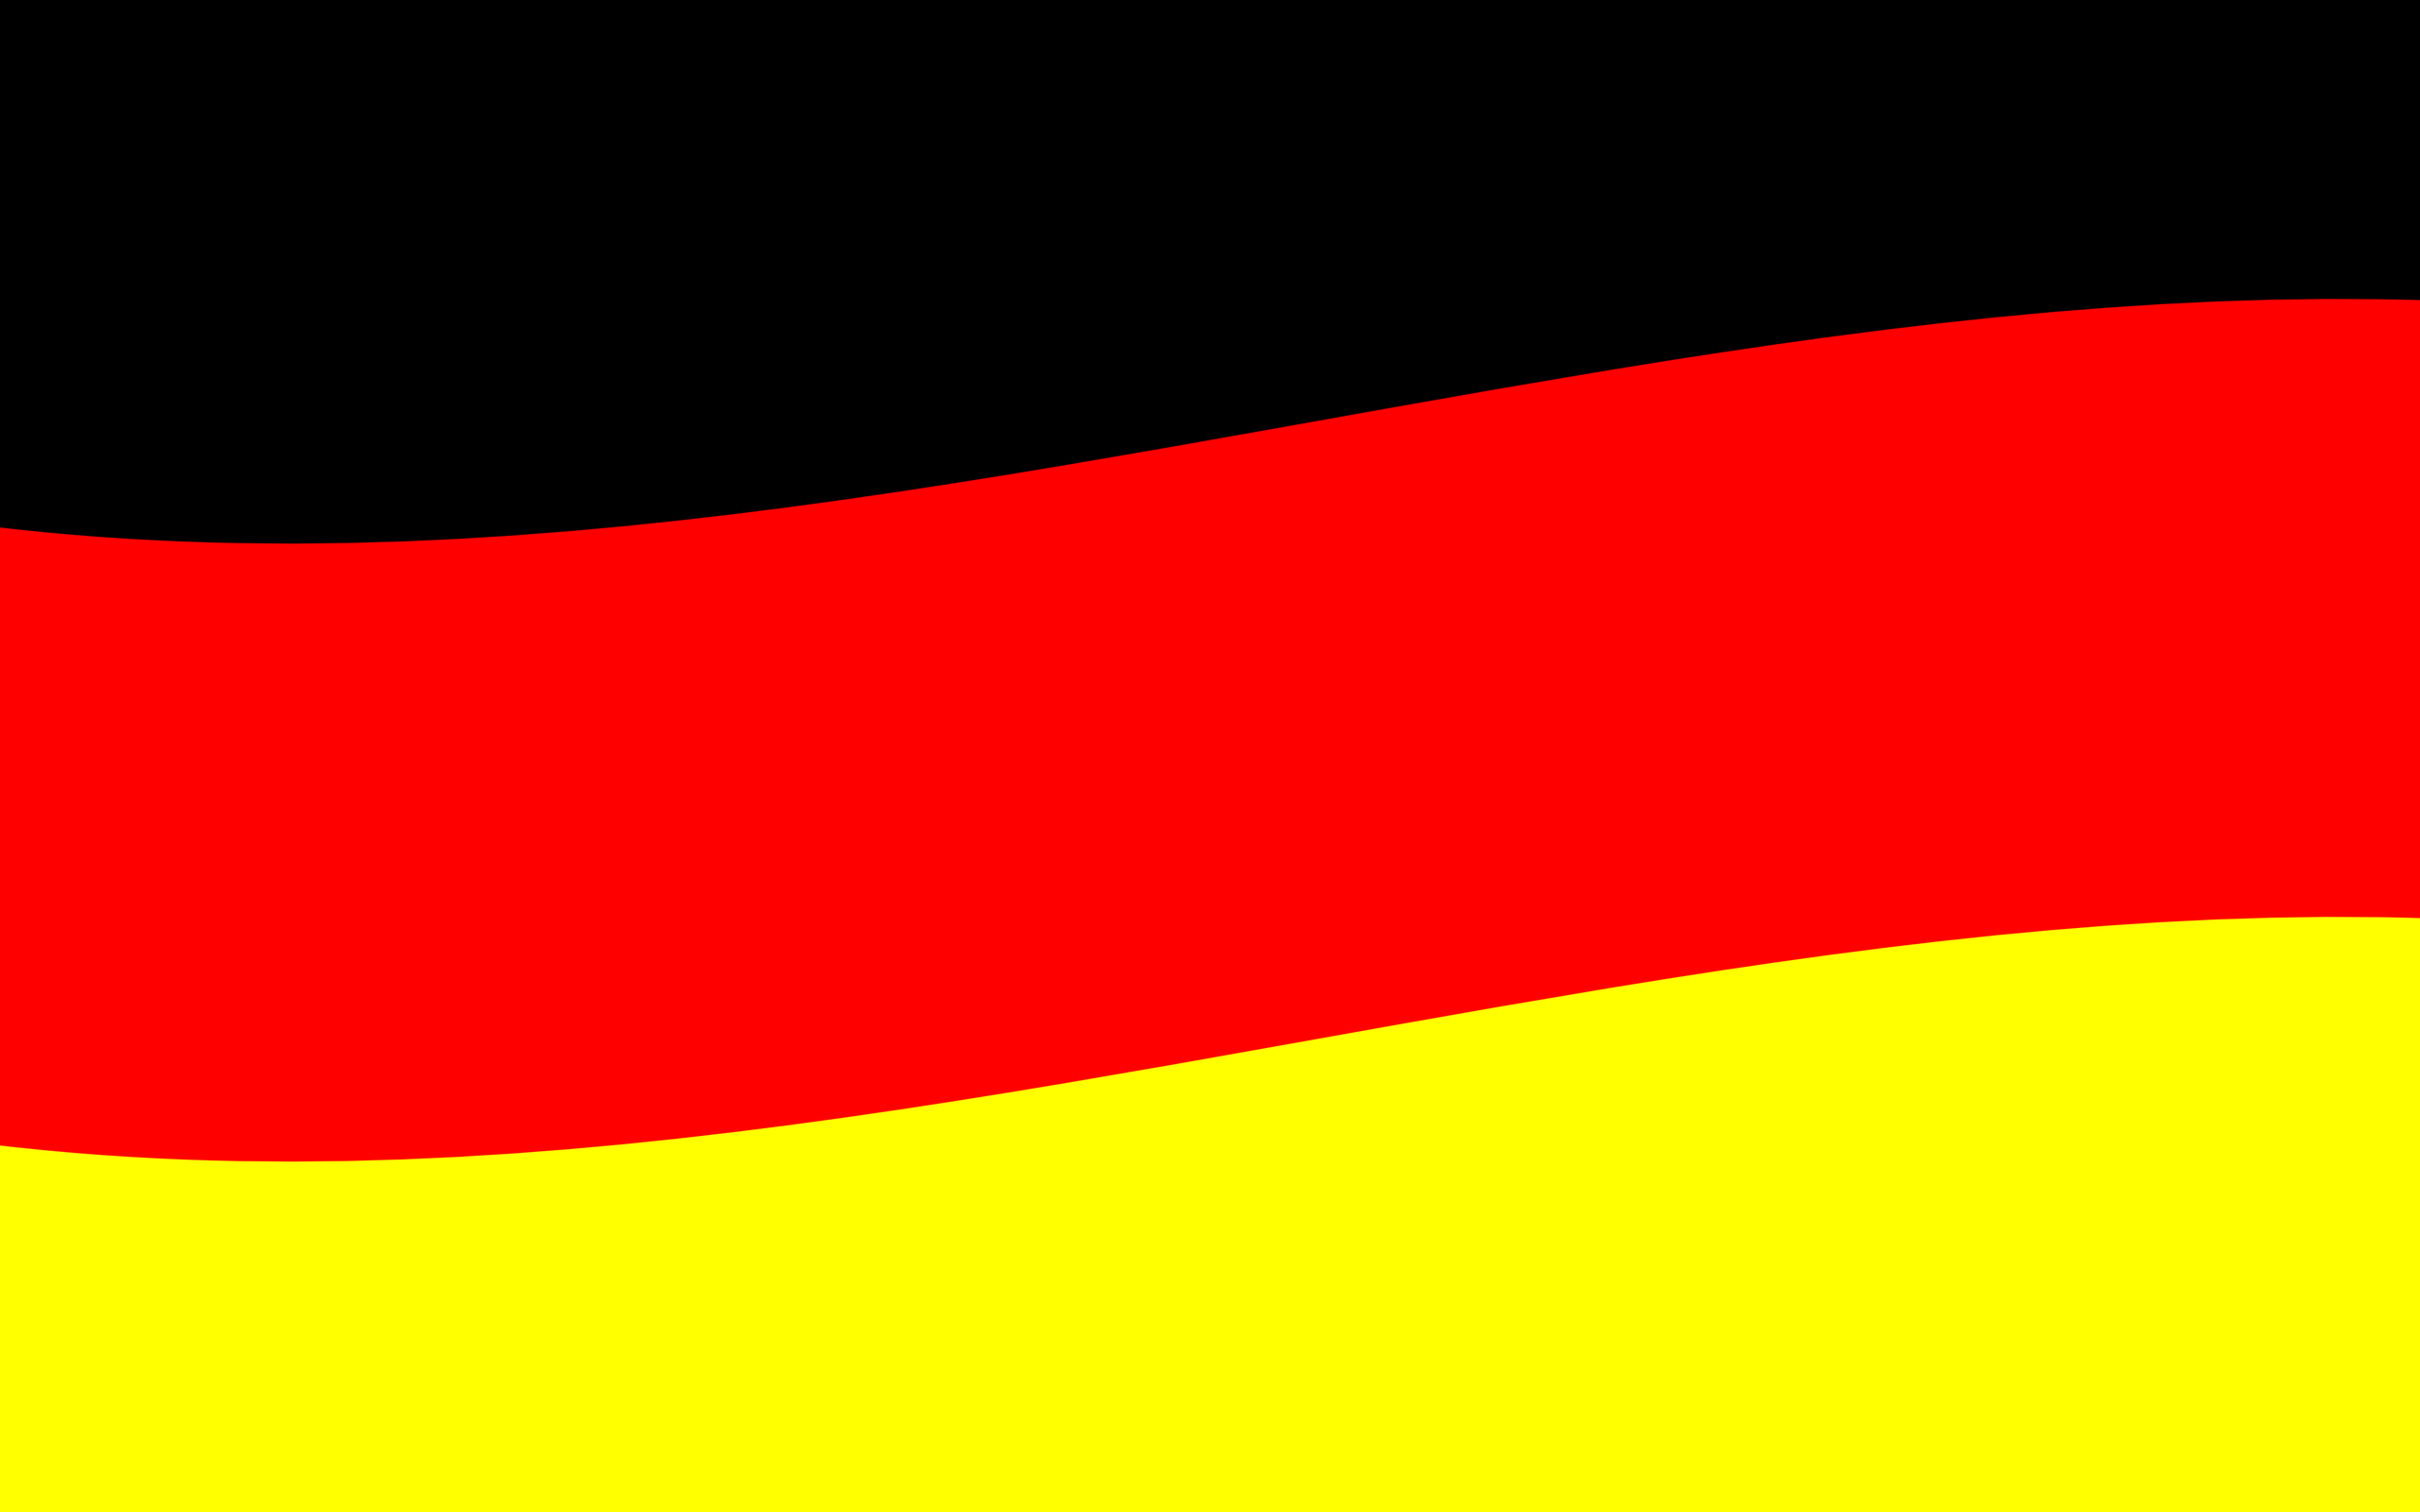 Germany Flag Png - Download Germany Flag Png Images Transparent Gallery. Advertisement, Transparent background PNG HD thumbnail